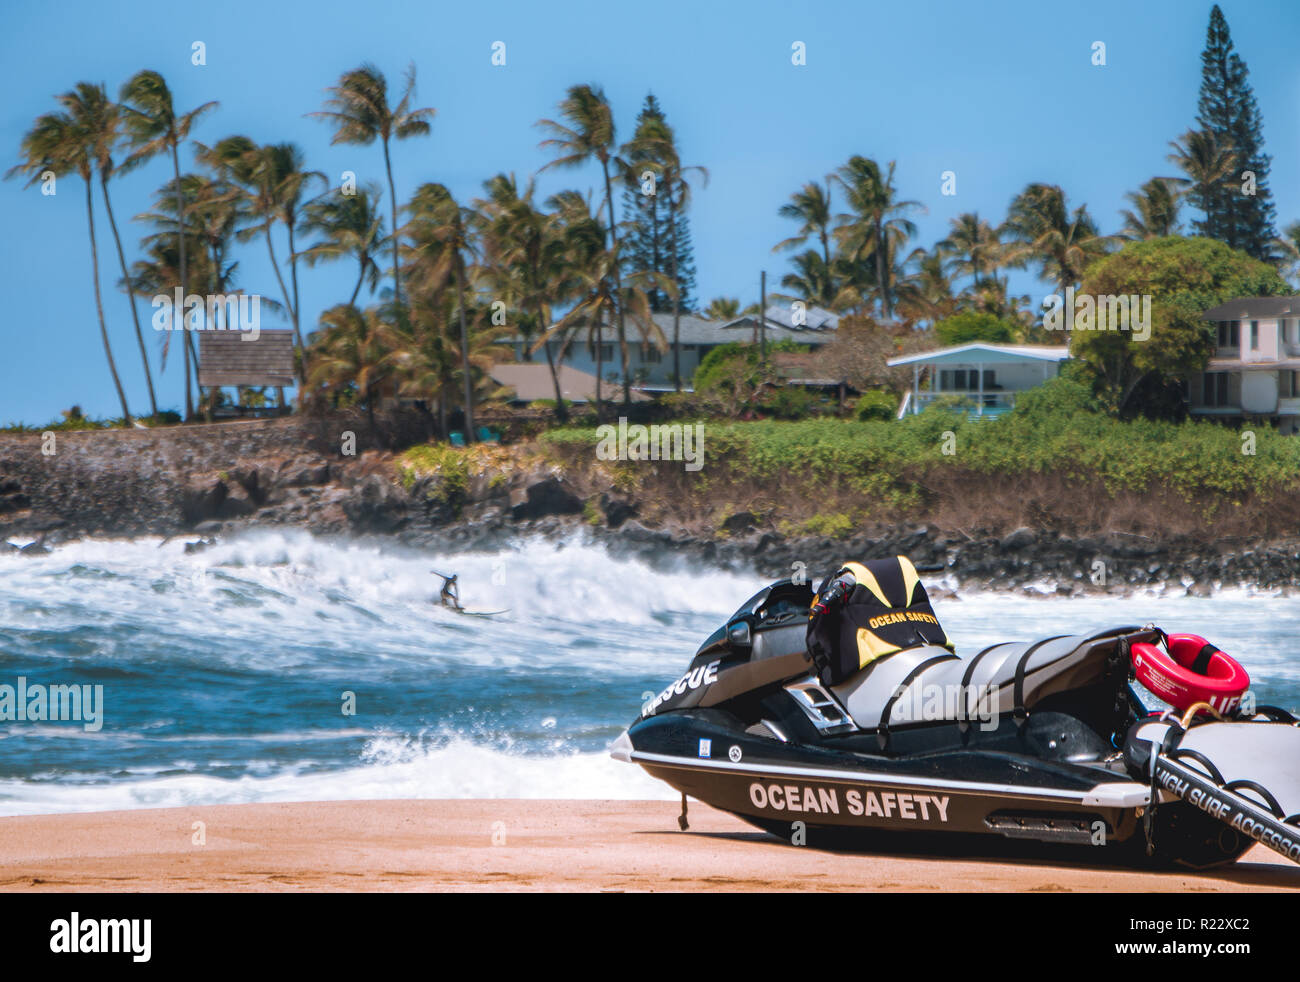 A single sufers hits a wave in fround of rocks and houses in the blured background as a lifeguard rescue jetski sets on the beach the reads ocean safe - Stock Image